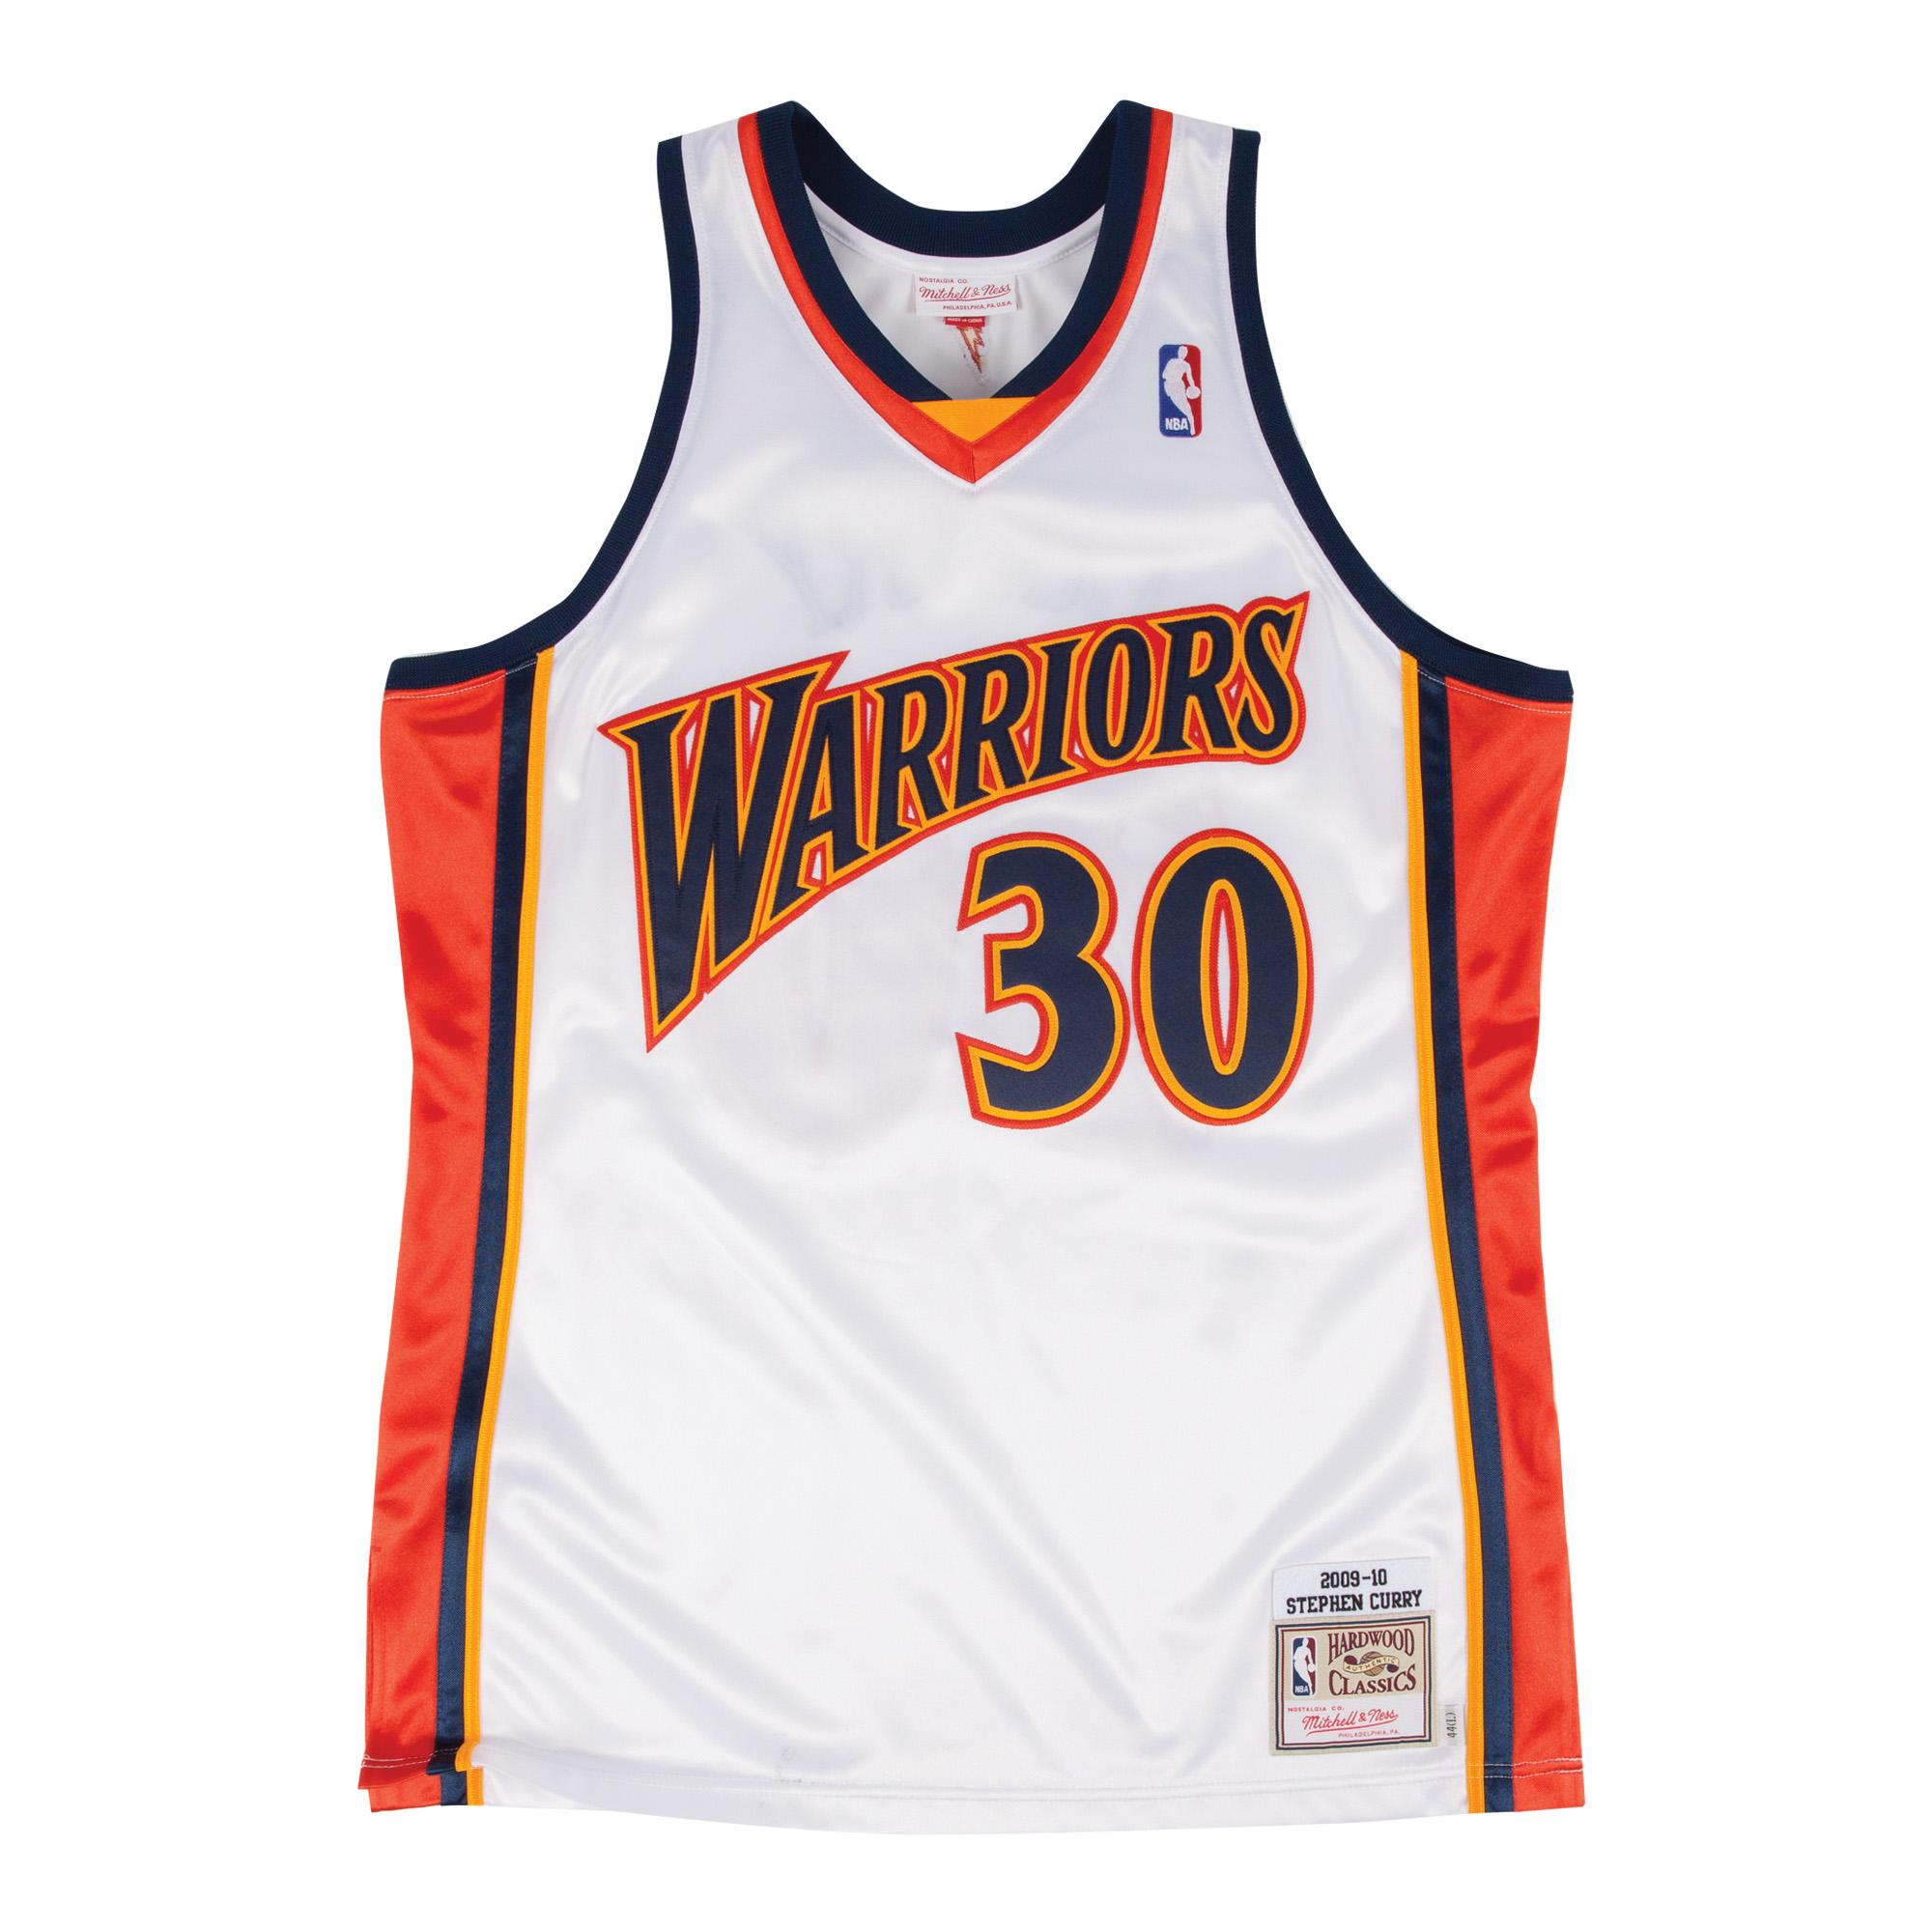 08c80b94529 Mitchell & Ness Nostalgia Co. | Stephen Curry 2009-10 Home Authentic ...